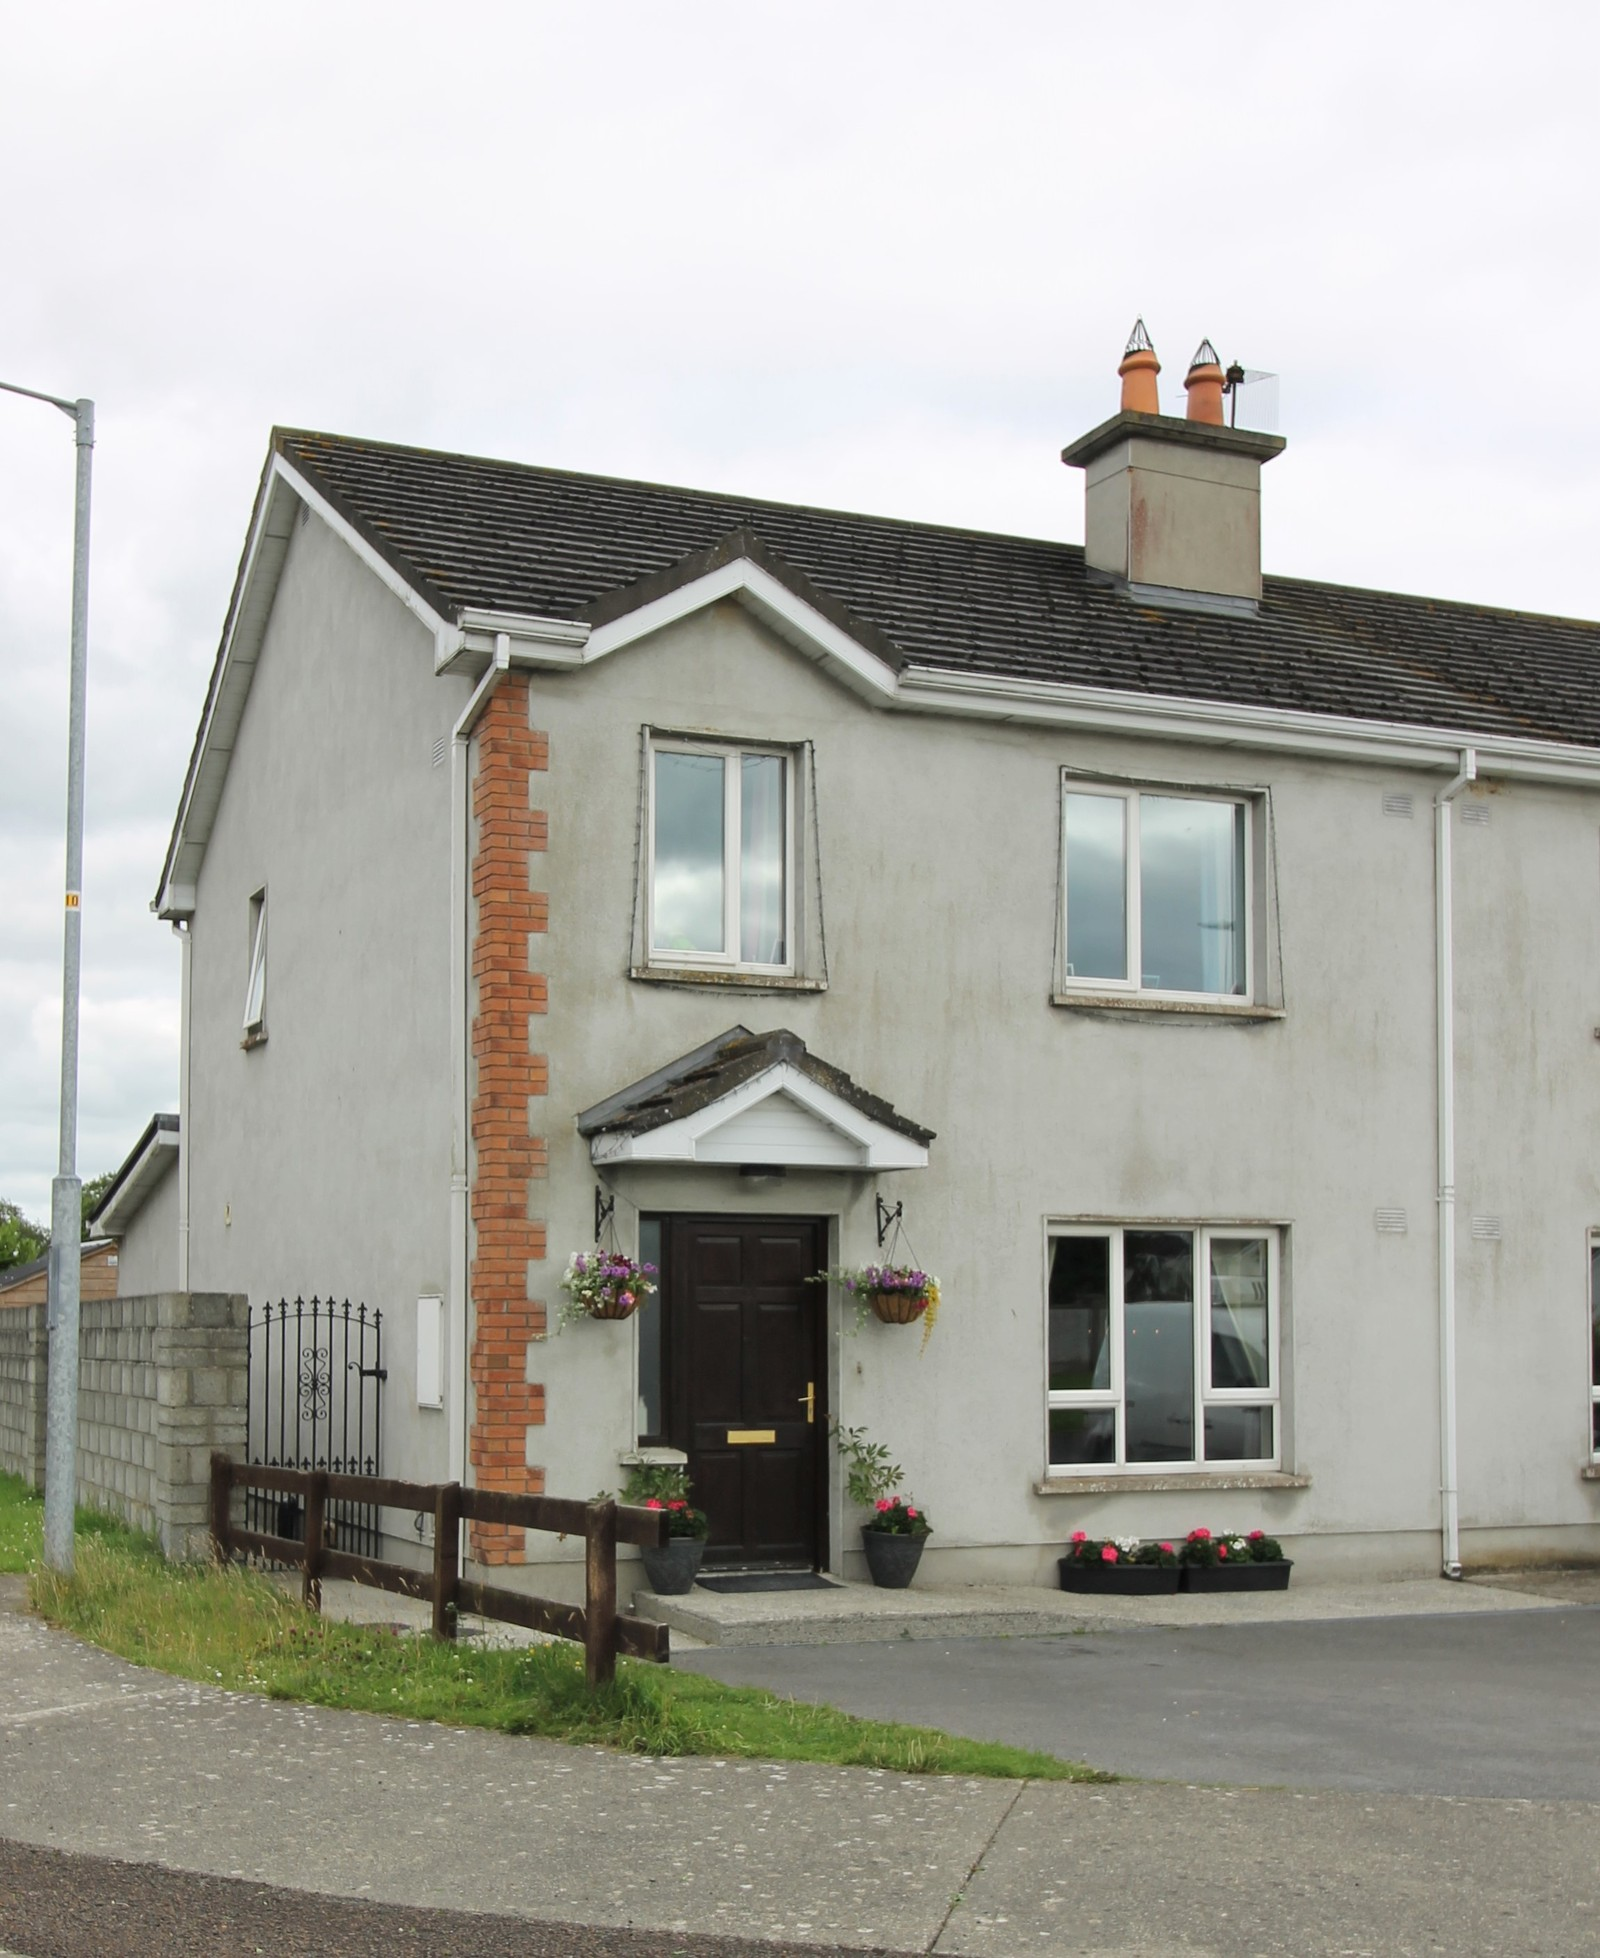 15 Kiltillane Court, Templemore, Co. Tipperary